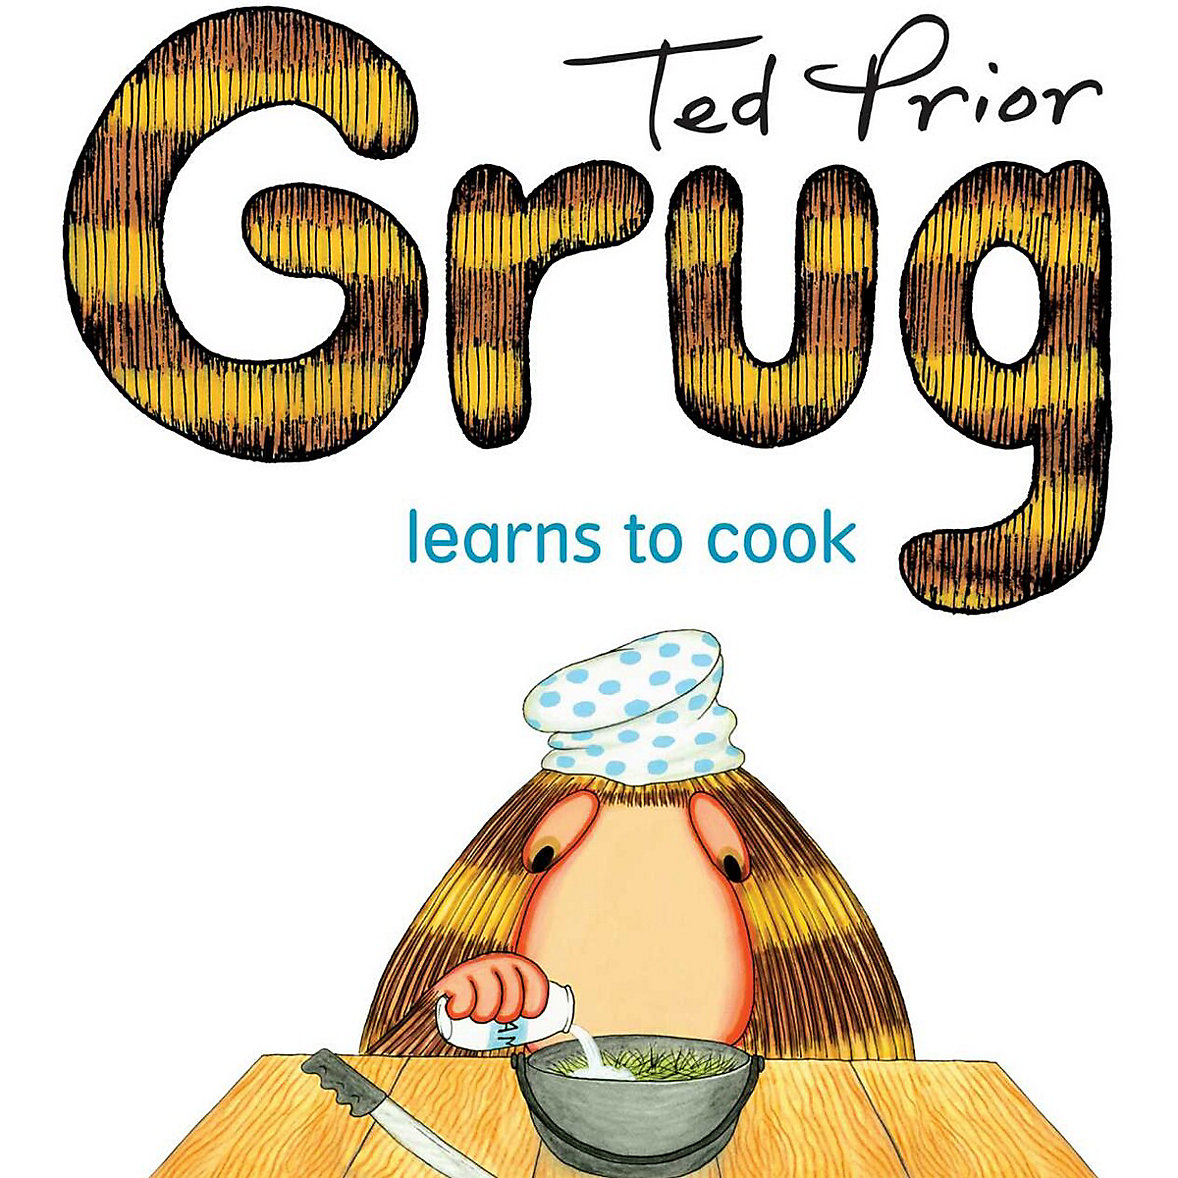 Grug - Ted Prior